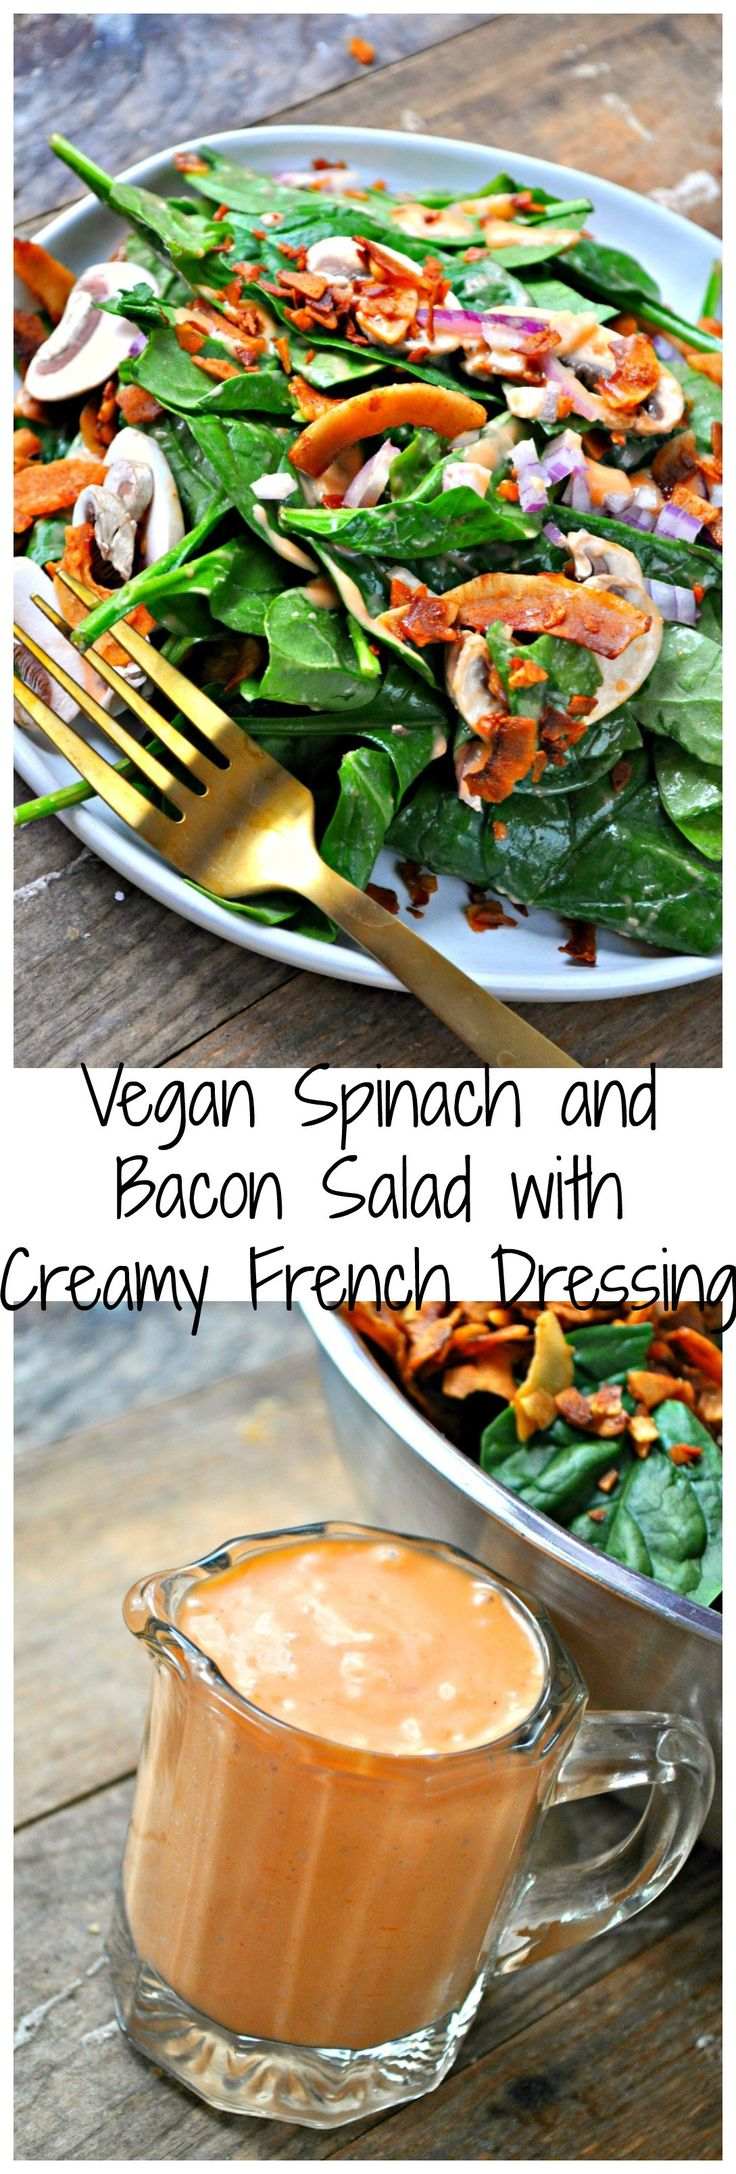 Vegan Spinach and Bacon Salad with Creamy French Dressing